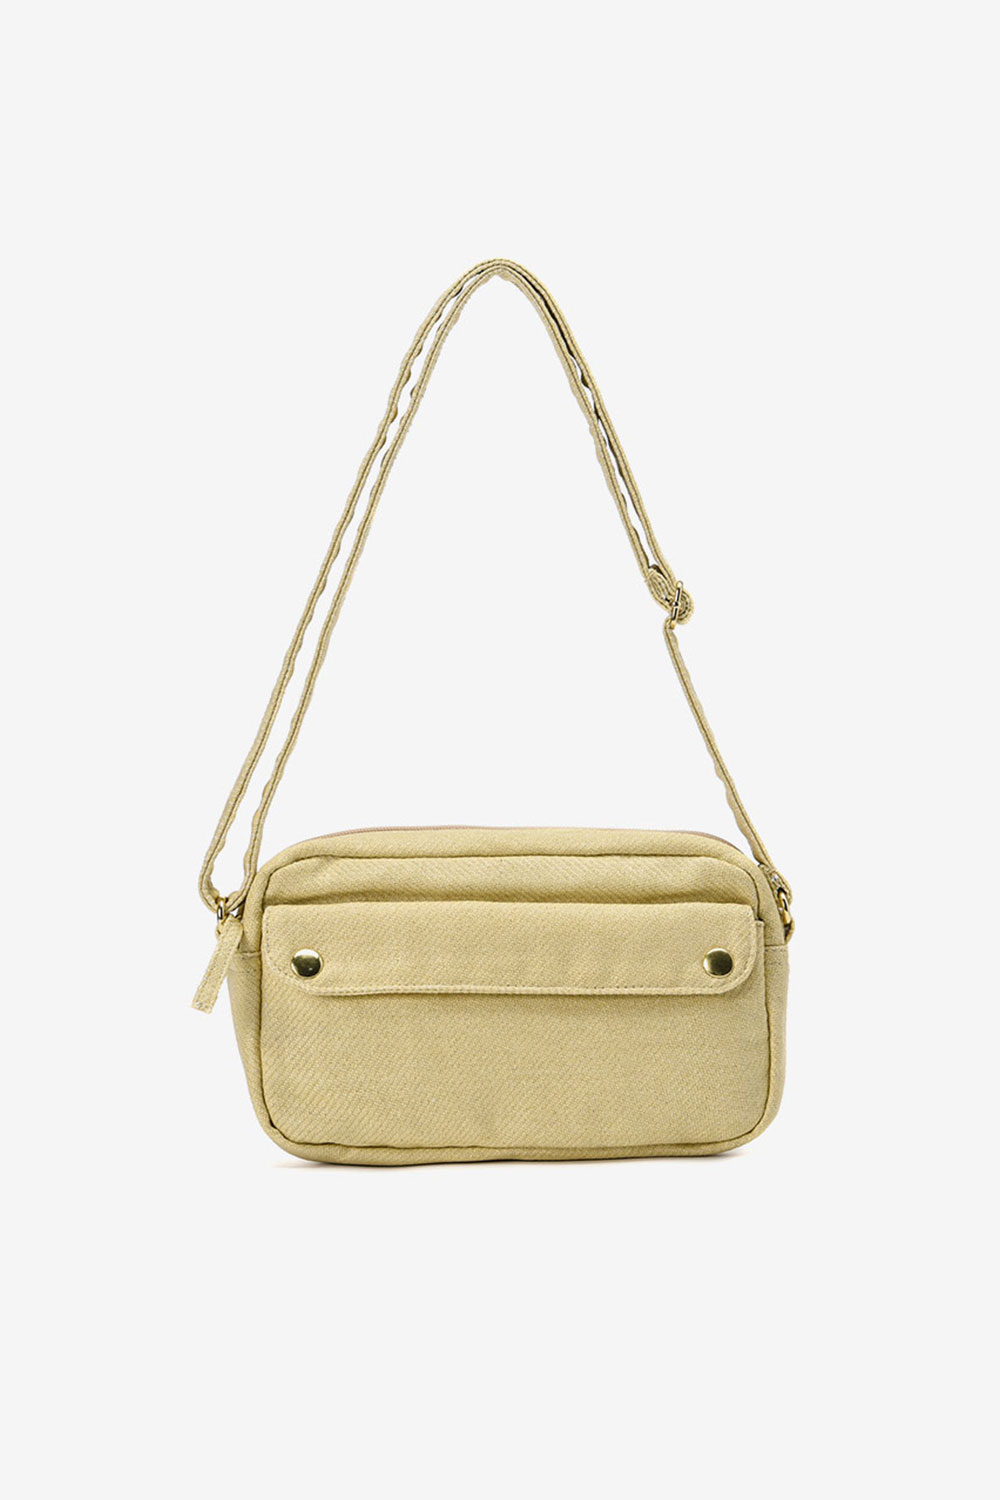 [Serge Authentique] Cross Body_Ivory BS9SCB102